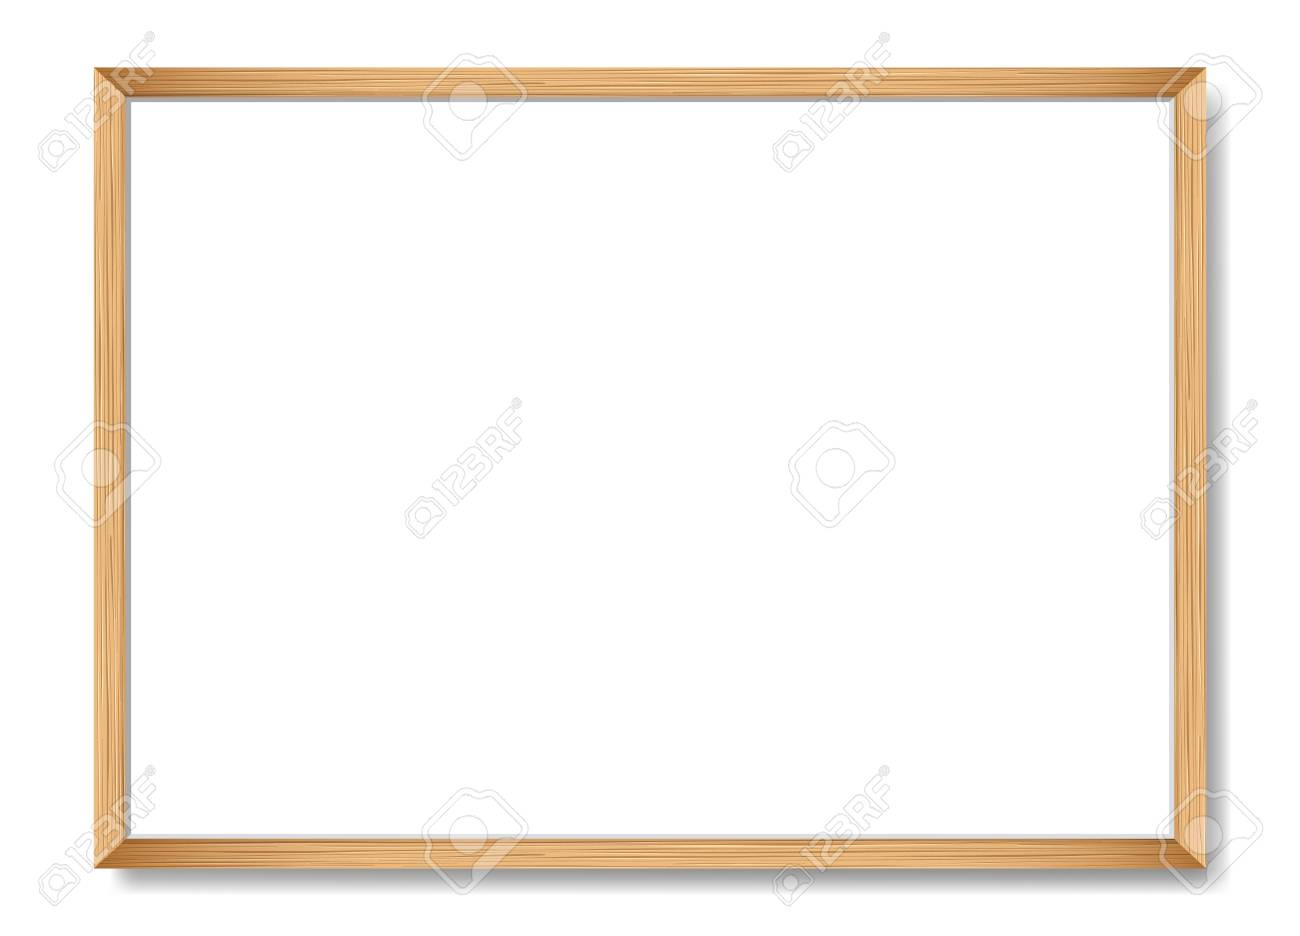 Blank picture frame template. Realistic wooden frame with shadow on white for photo or poster. Horizontal orientation A4 - 102210663